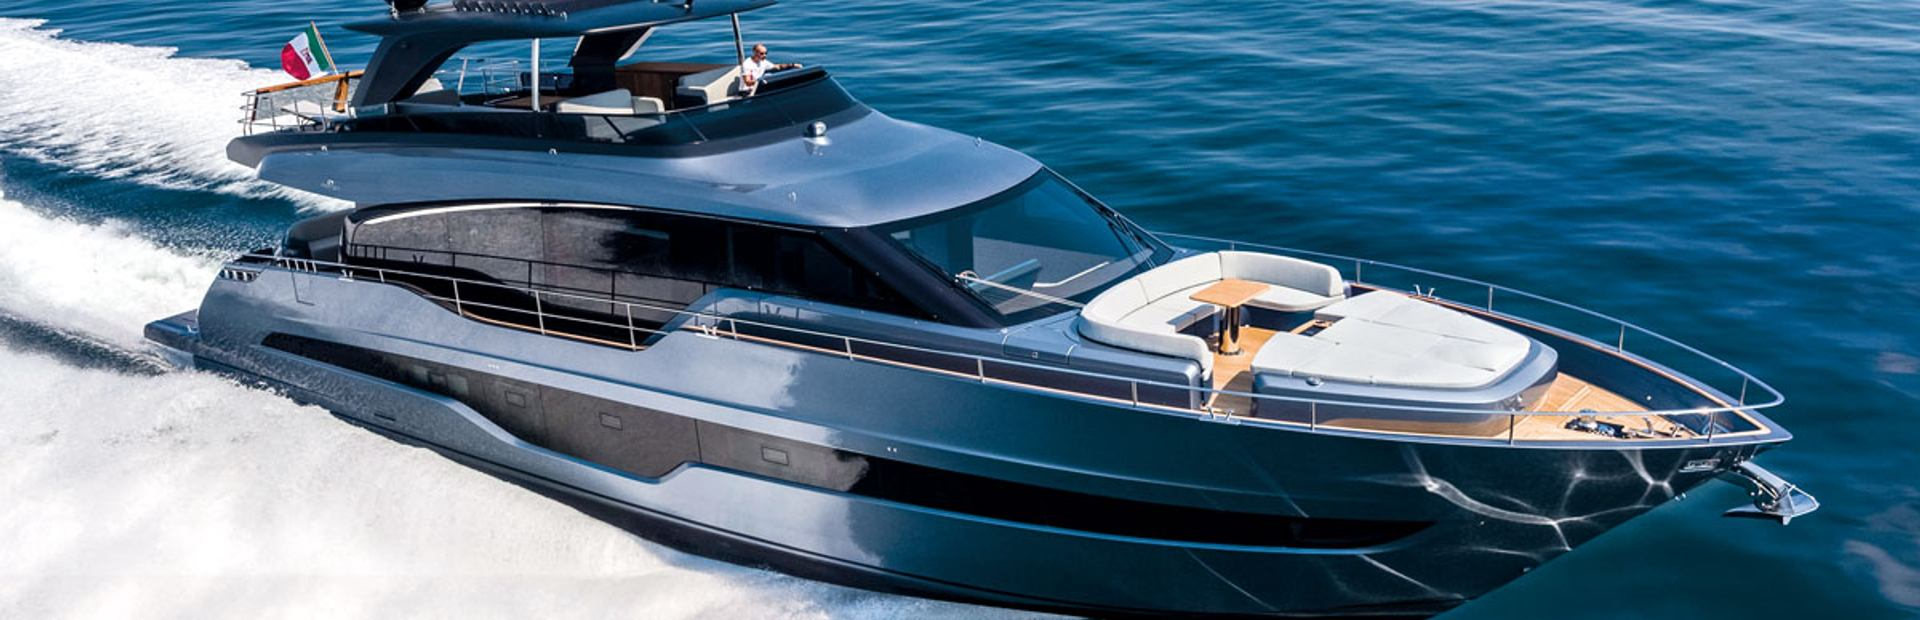 Settantotto Yacht Charter